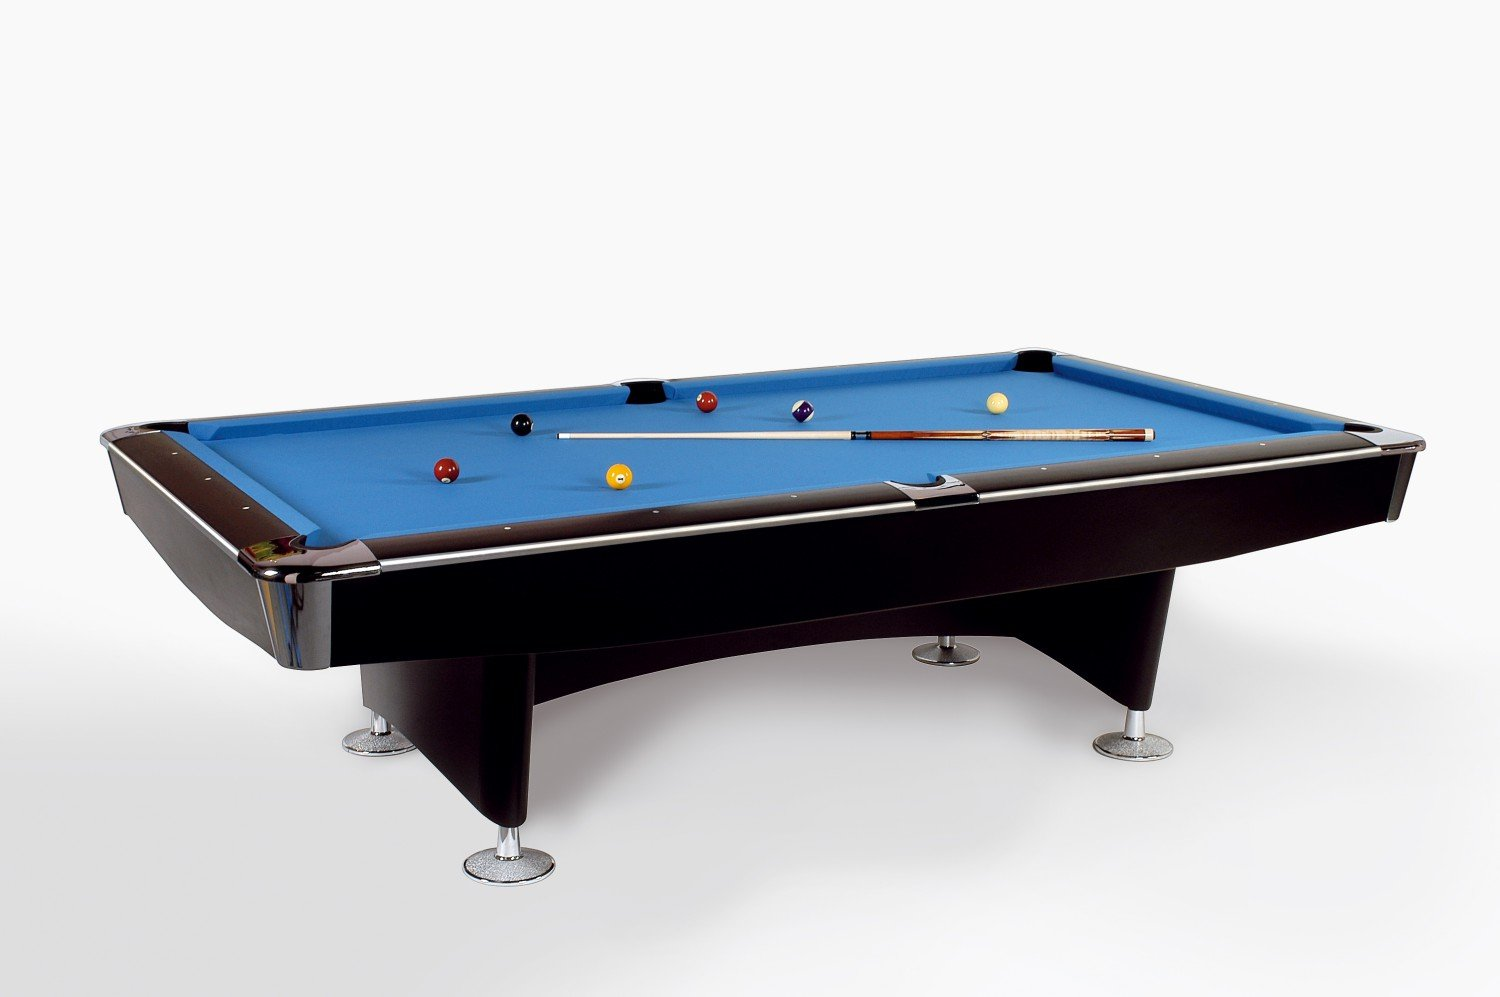 Club Master Mesa de Billar 9 ft. Negro: Amazon.es: Deportes y aire ...